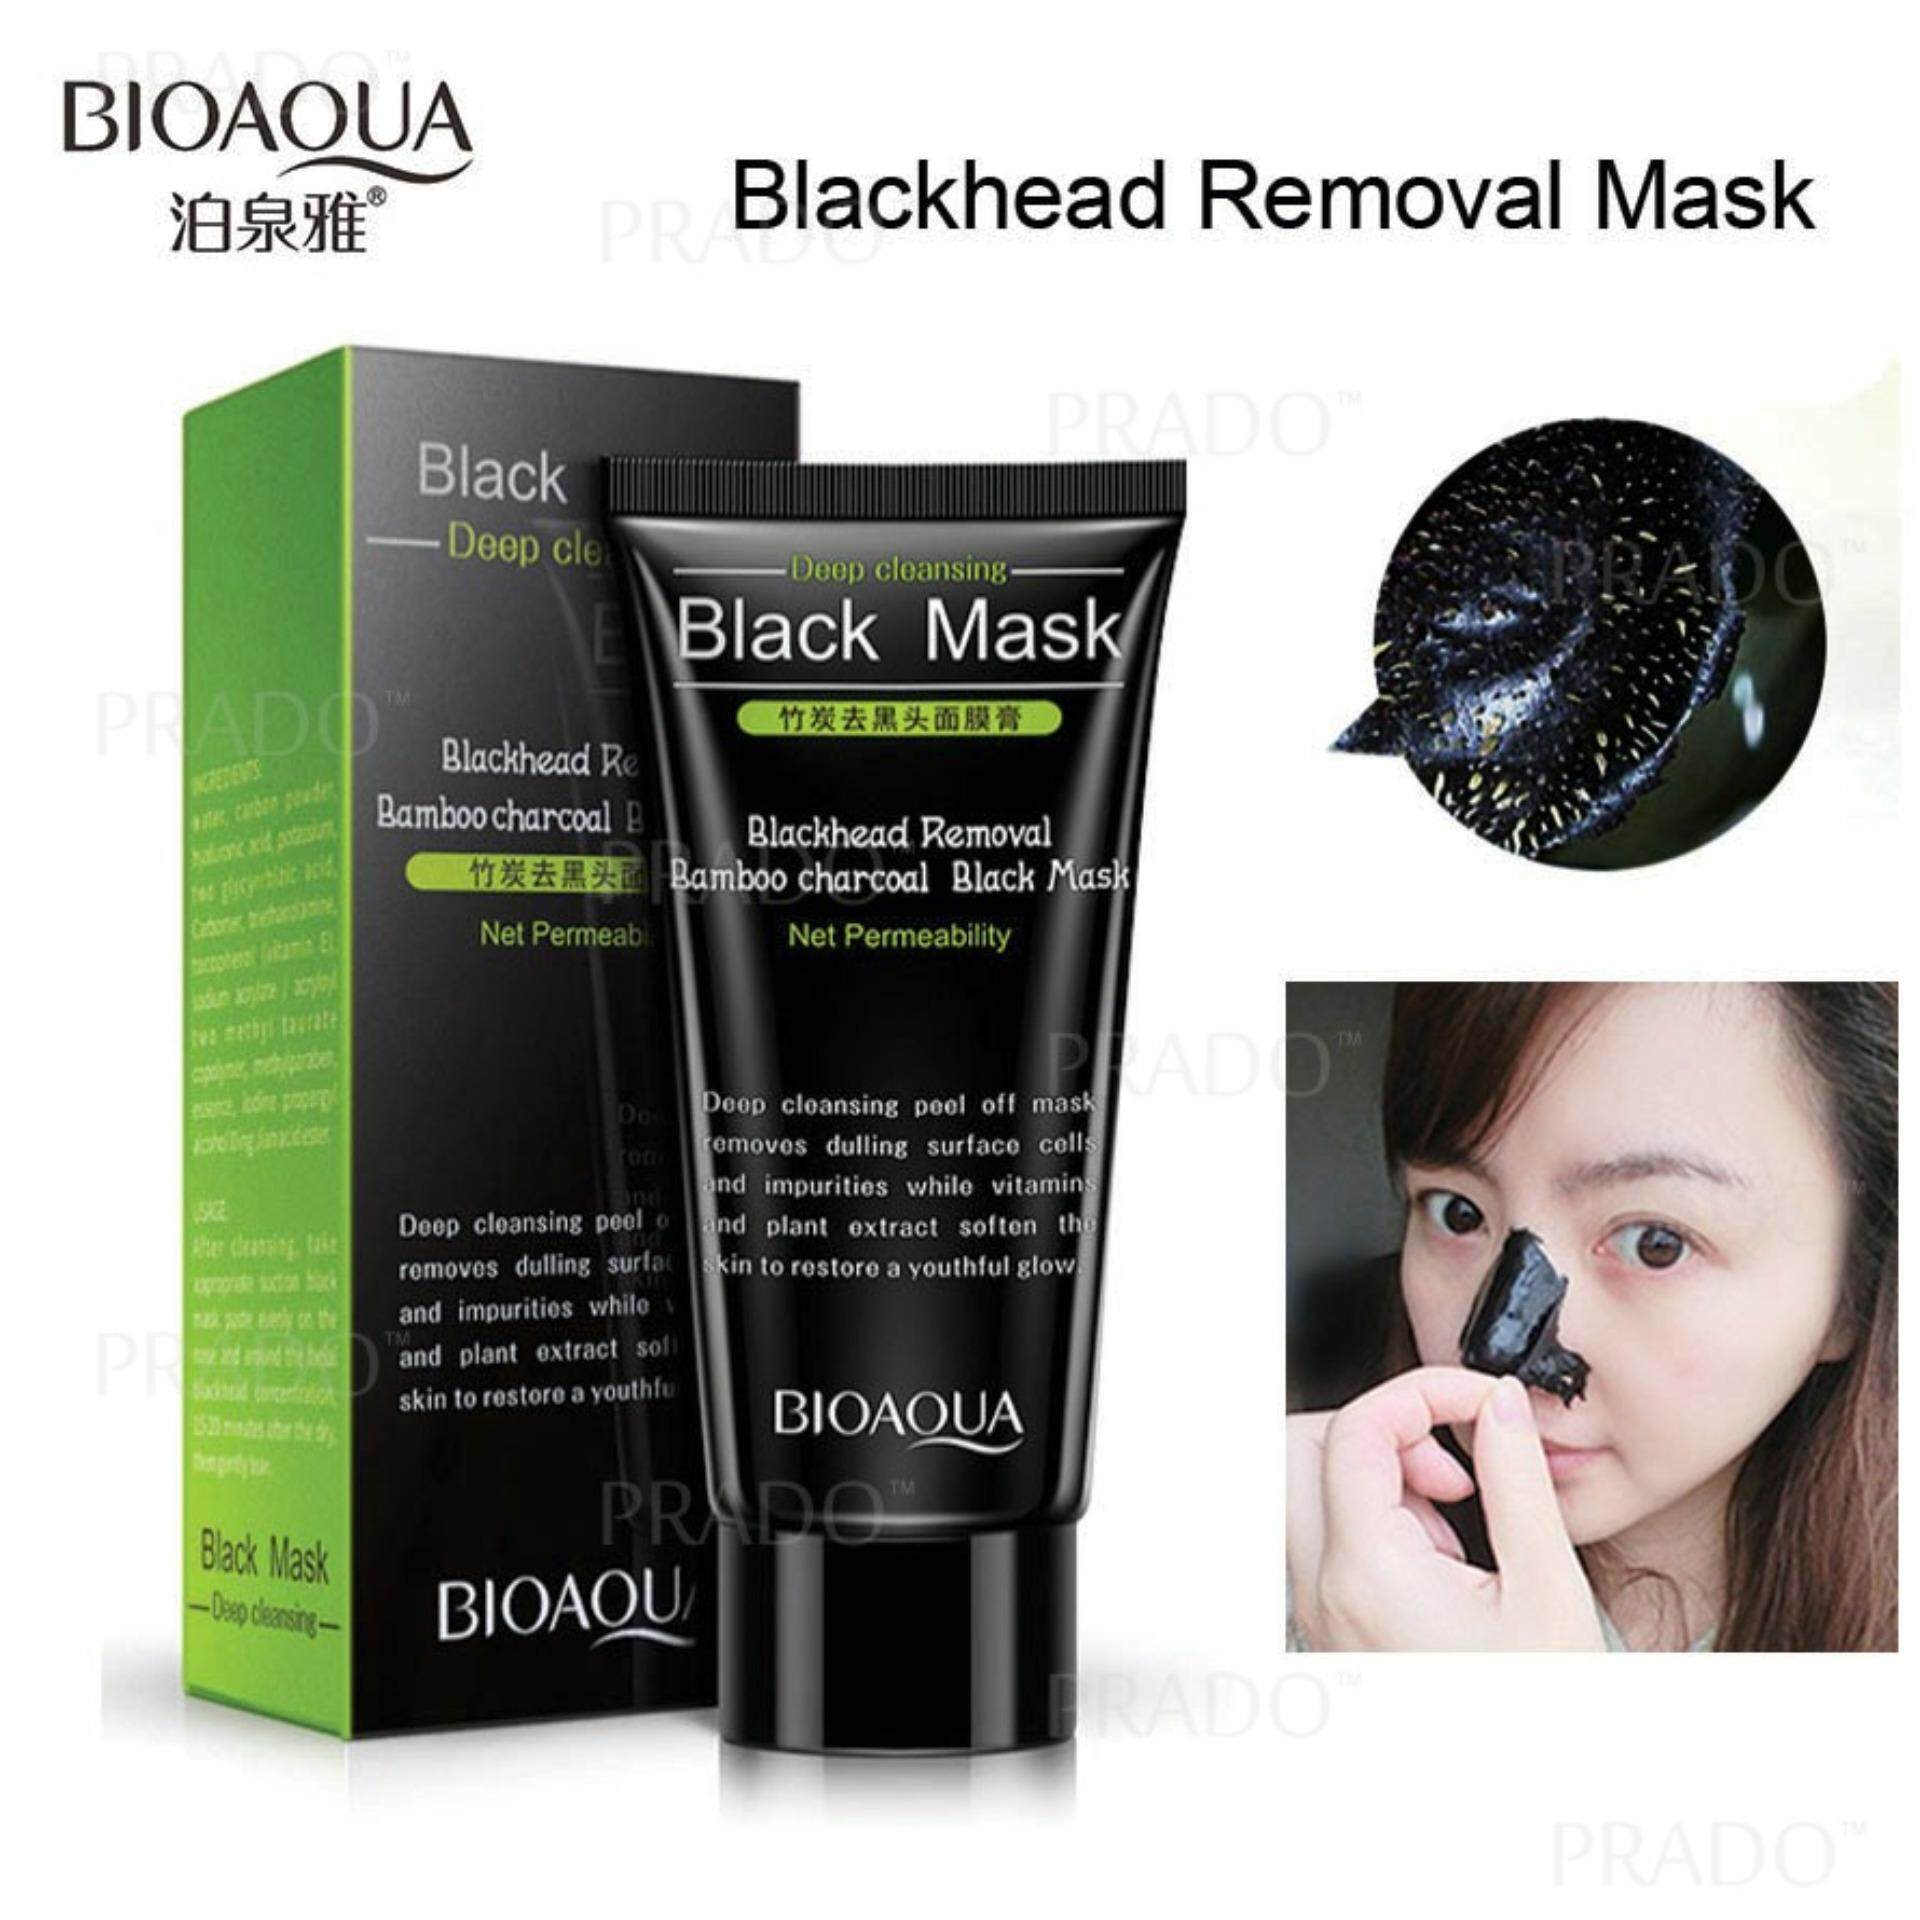 Bioaqua Blackhead Purifying Deep Cleansing Acne Mask Peel-Off Remover Hb-Bqy5662 By Prado Shop.